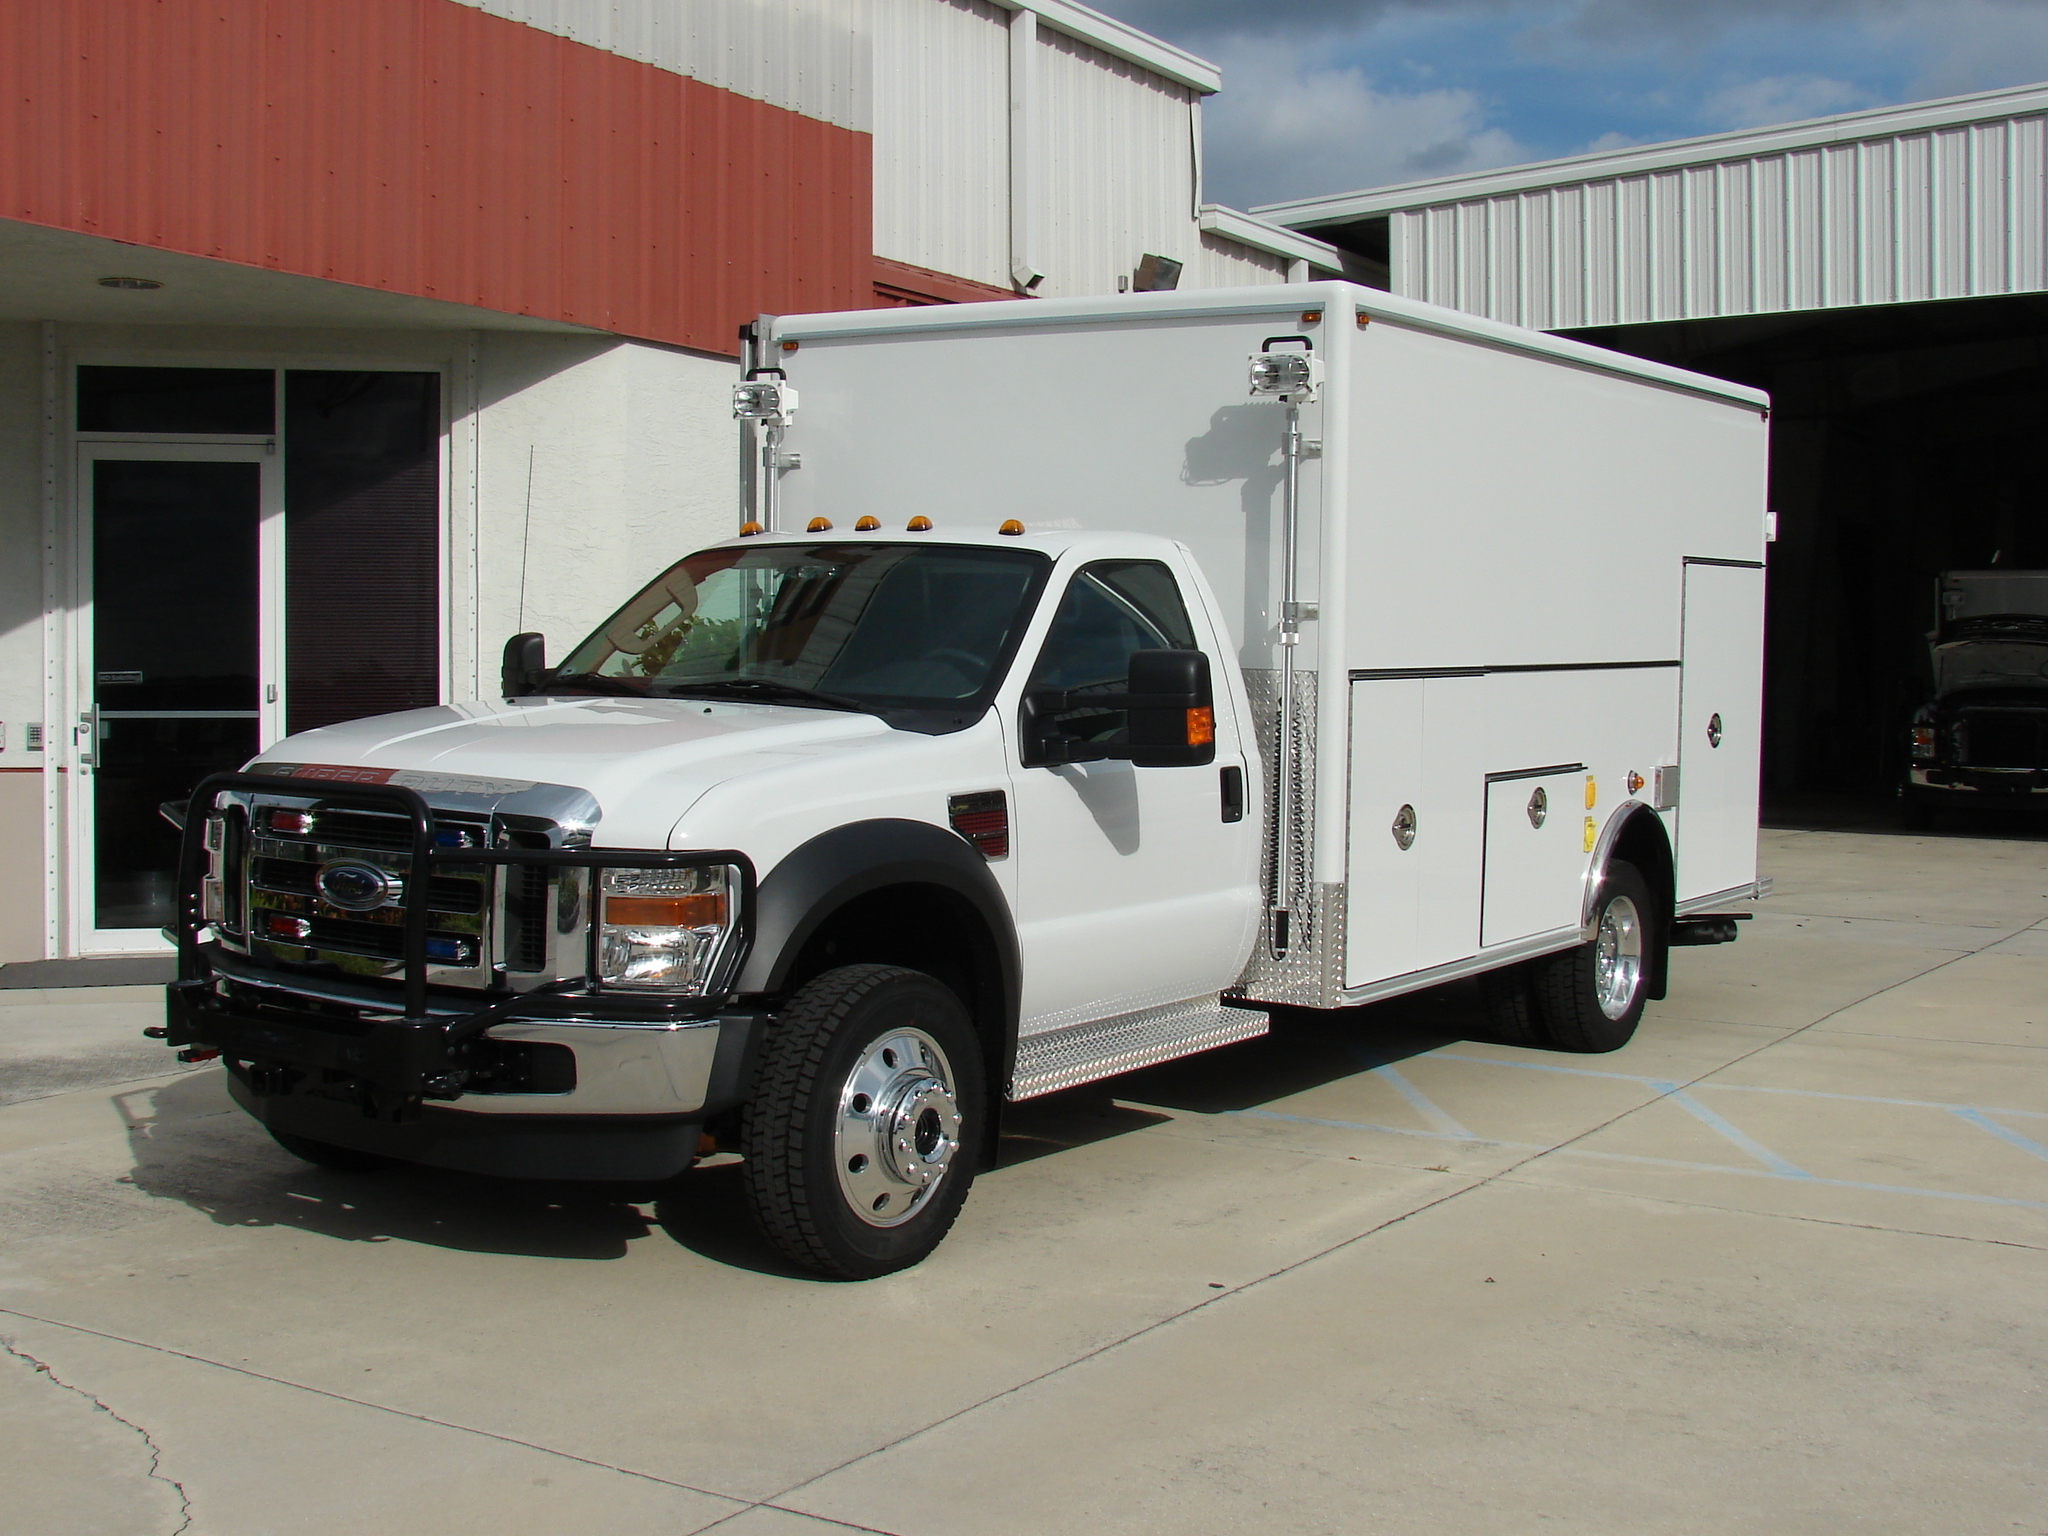 EVI Walk-In DEA Lab Safety Vehicle